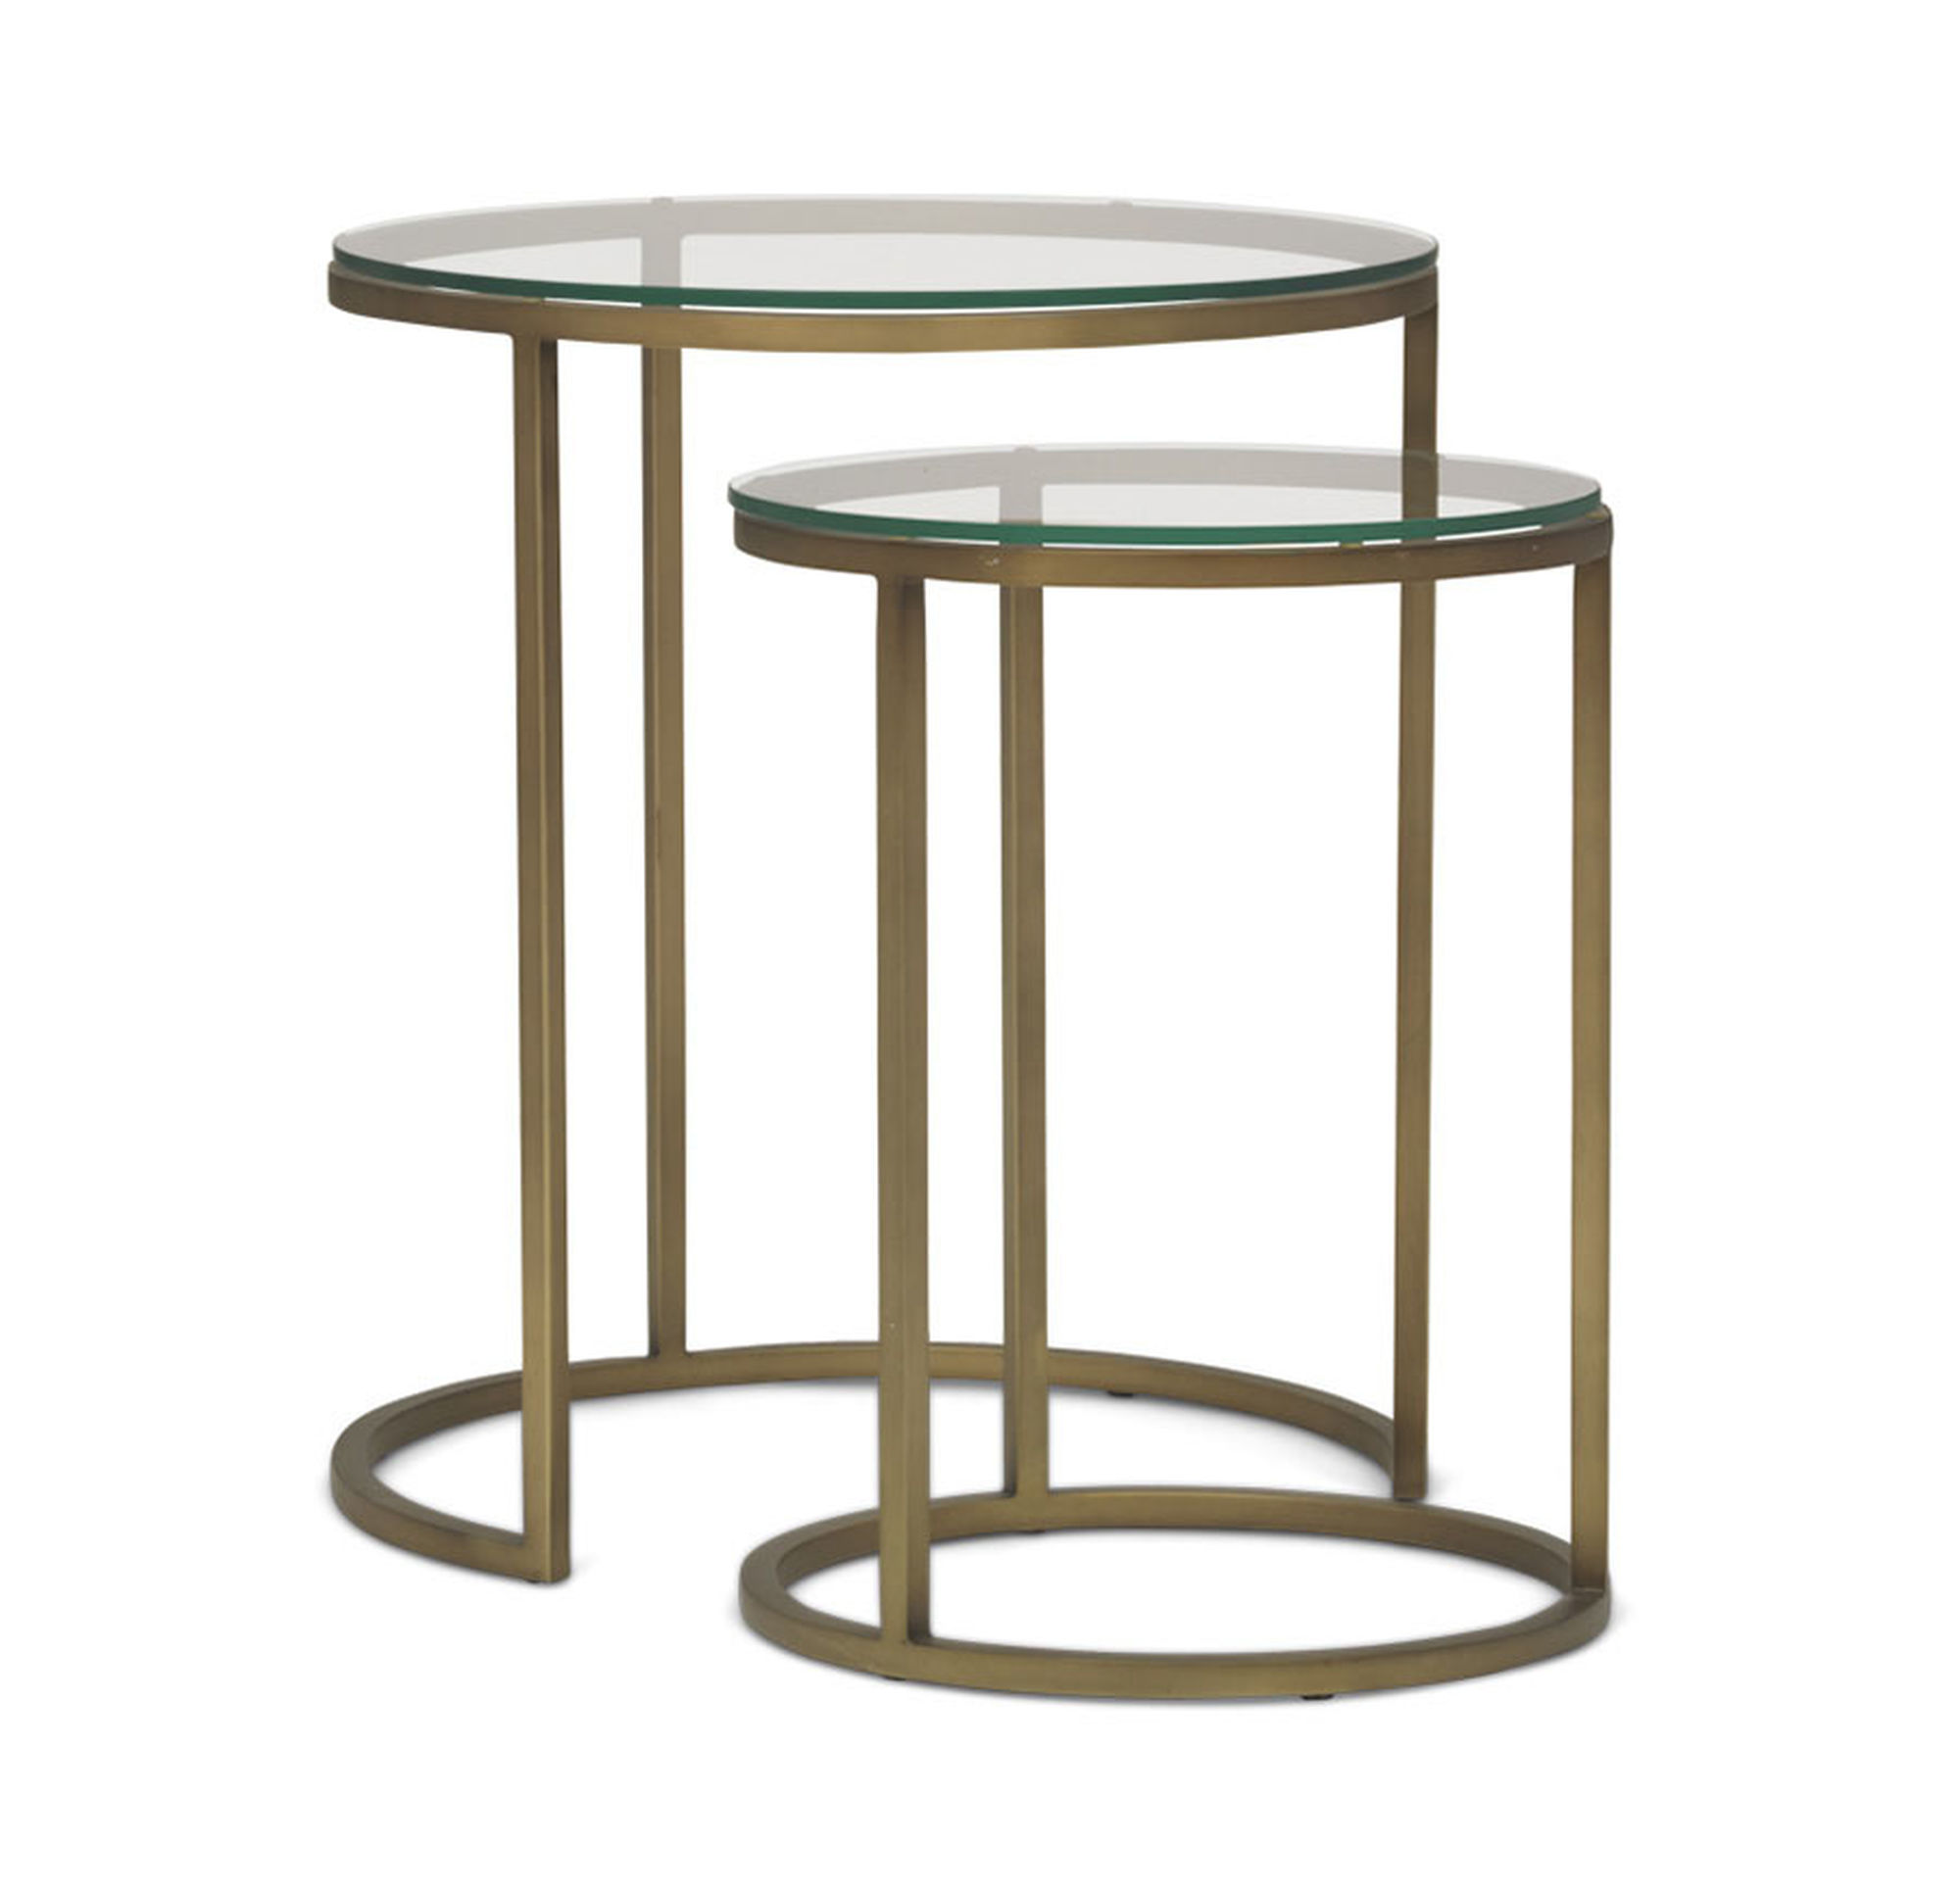 brass touch baroque accent table garden bench seat bunnings small battery operated lamps iron bedside west elm wood art comfortable chairs ergonomic furniture room essentials